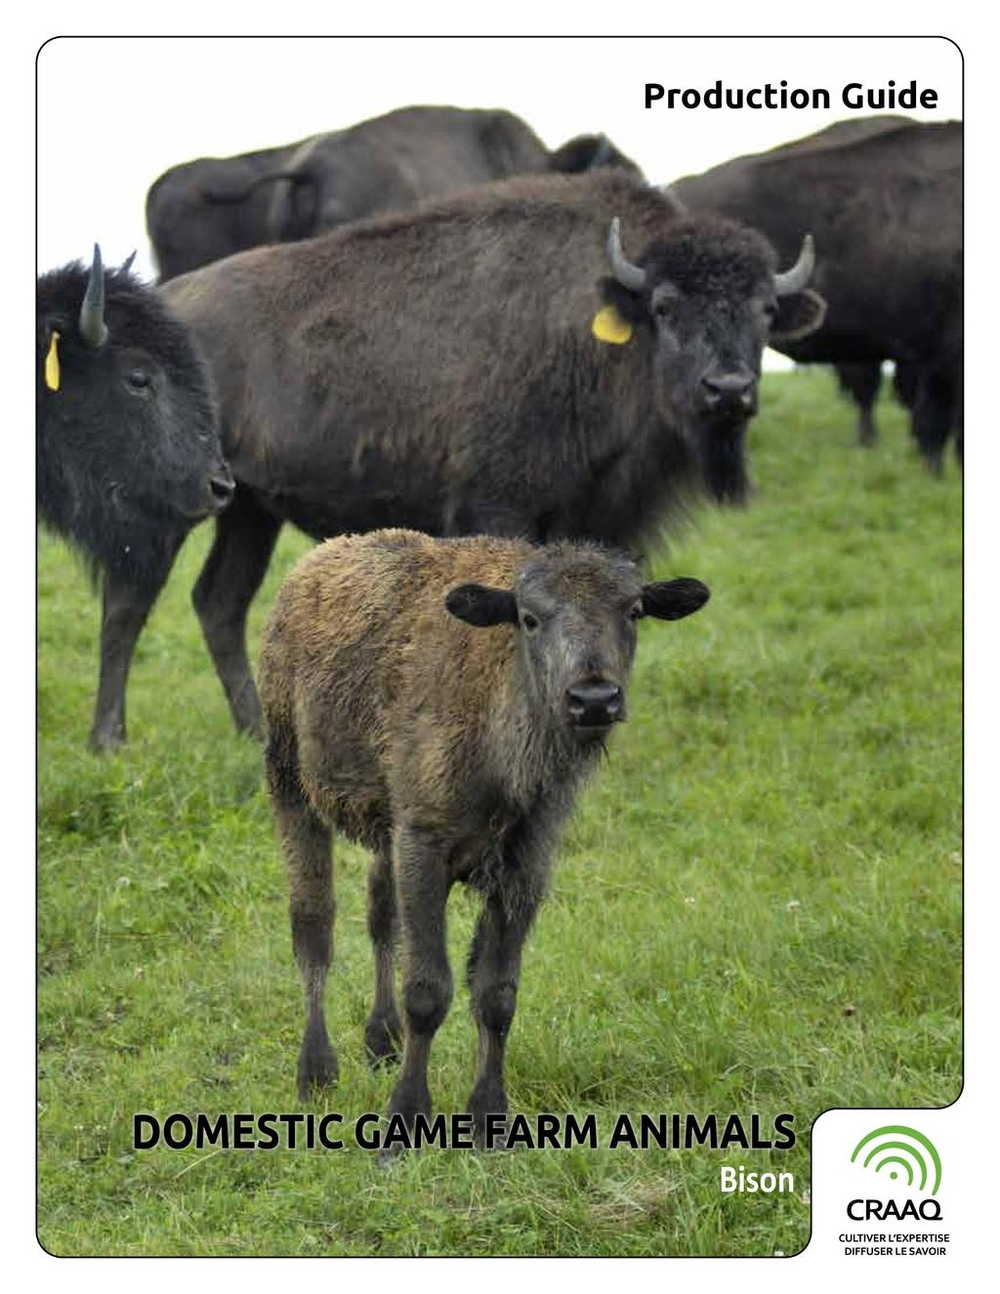 Domestic Game Farm Animals - Bison